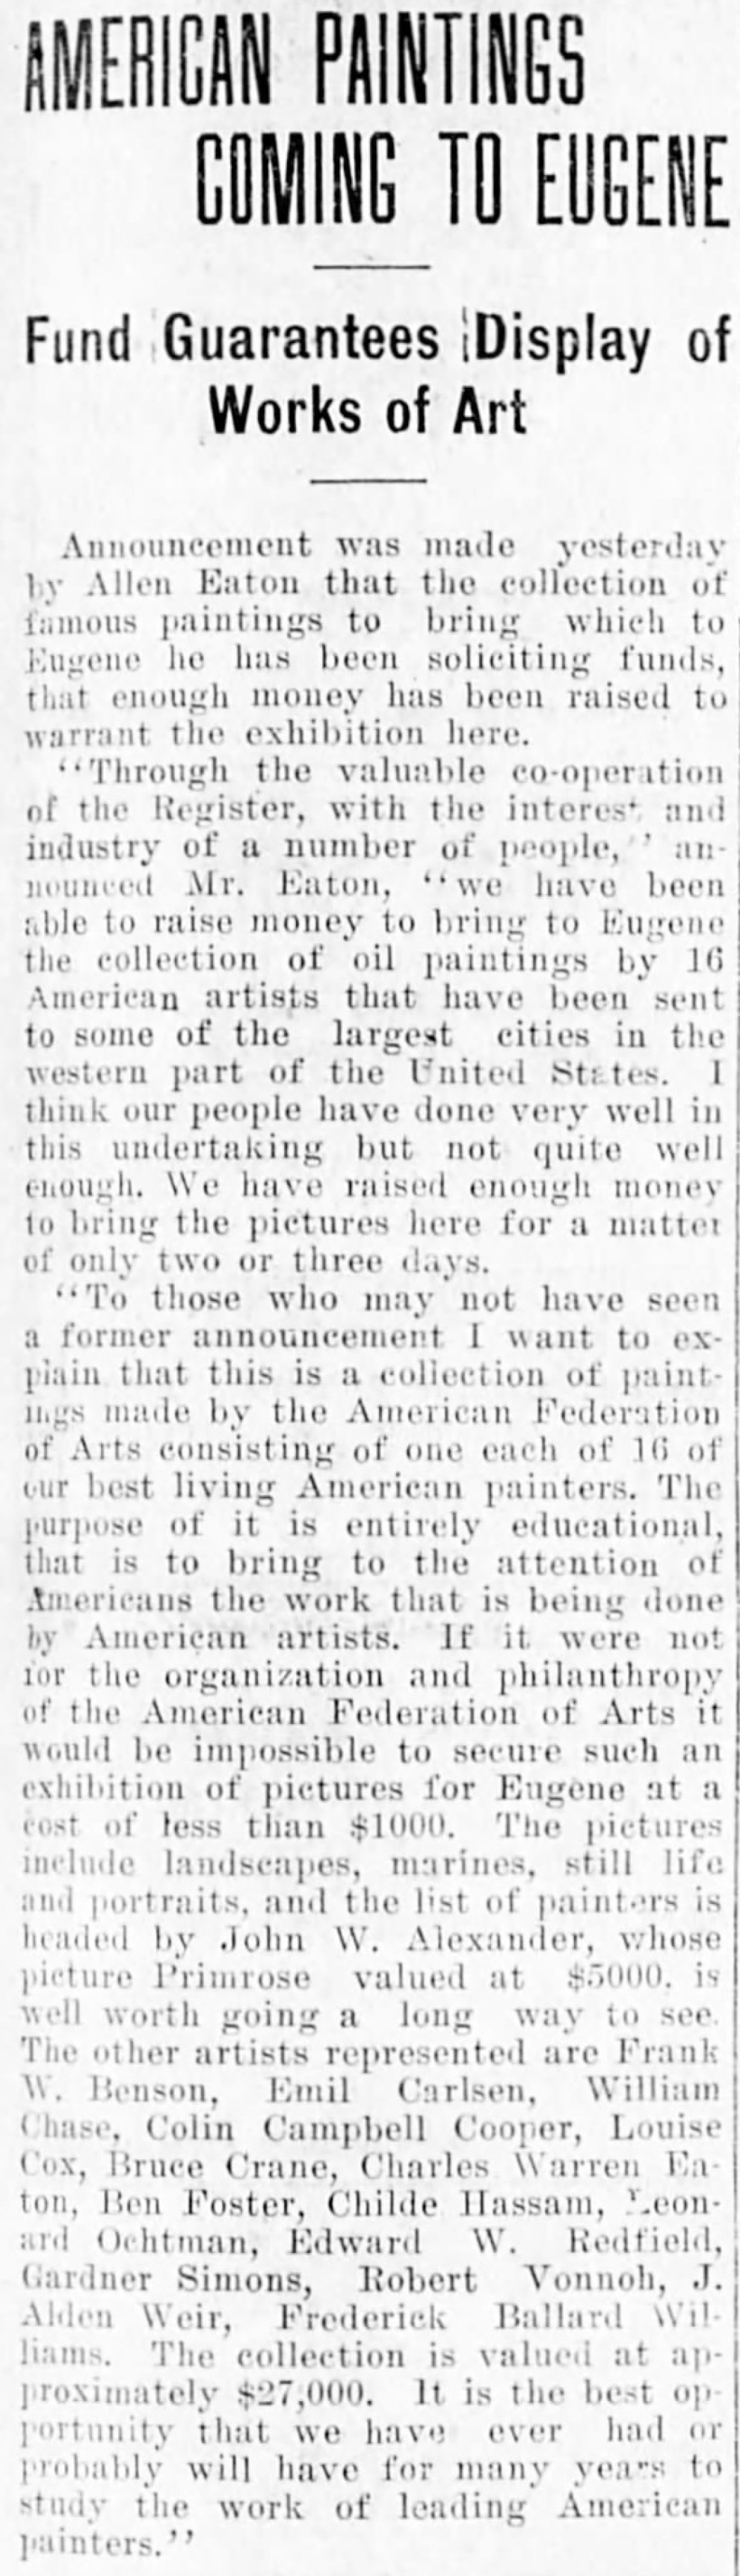 """Morning Register, Eugene, OR, """"American paintings coming to eugene : Fund guarantees display of works of art"""", Friday, February 6, 1914, page 3, not illustrated."""